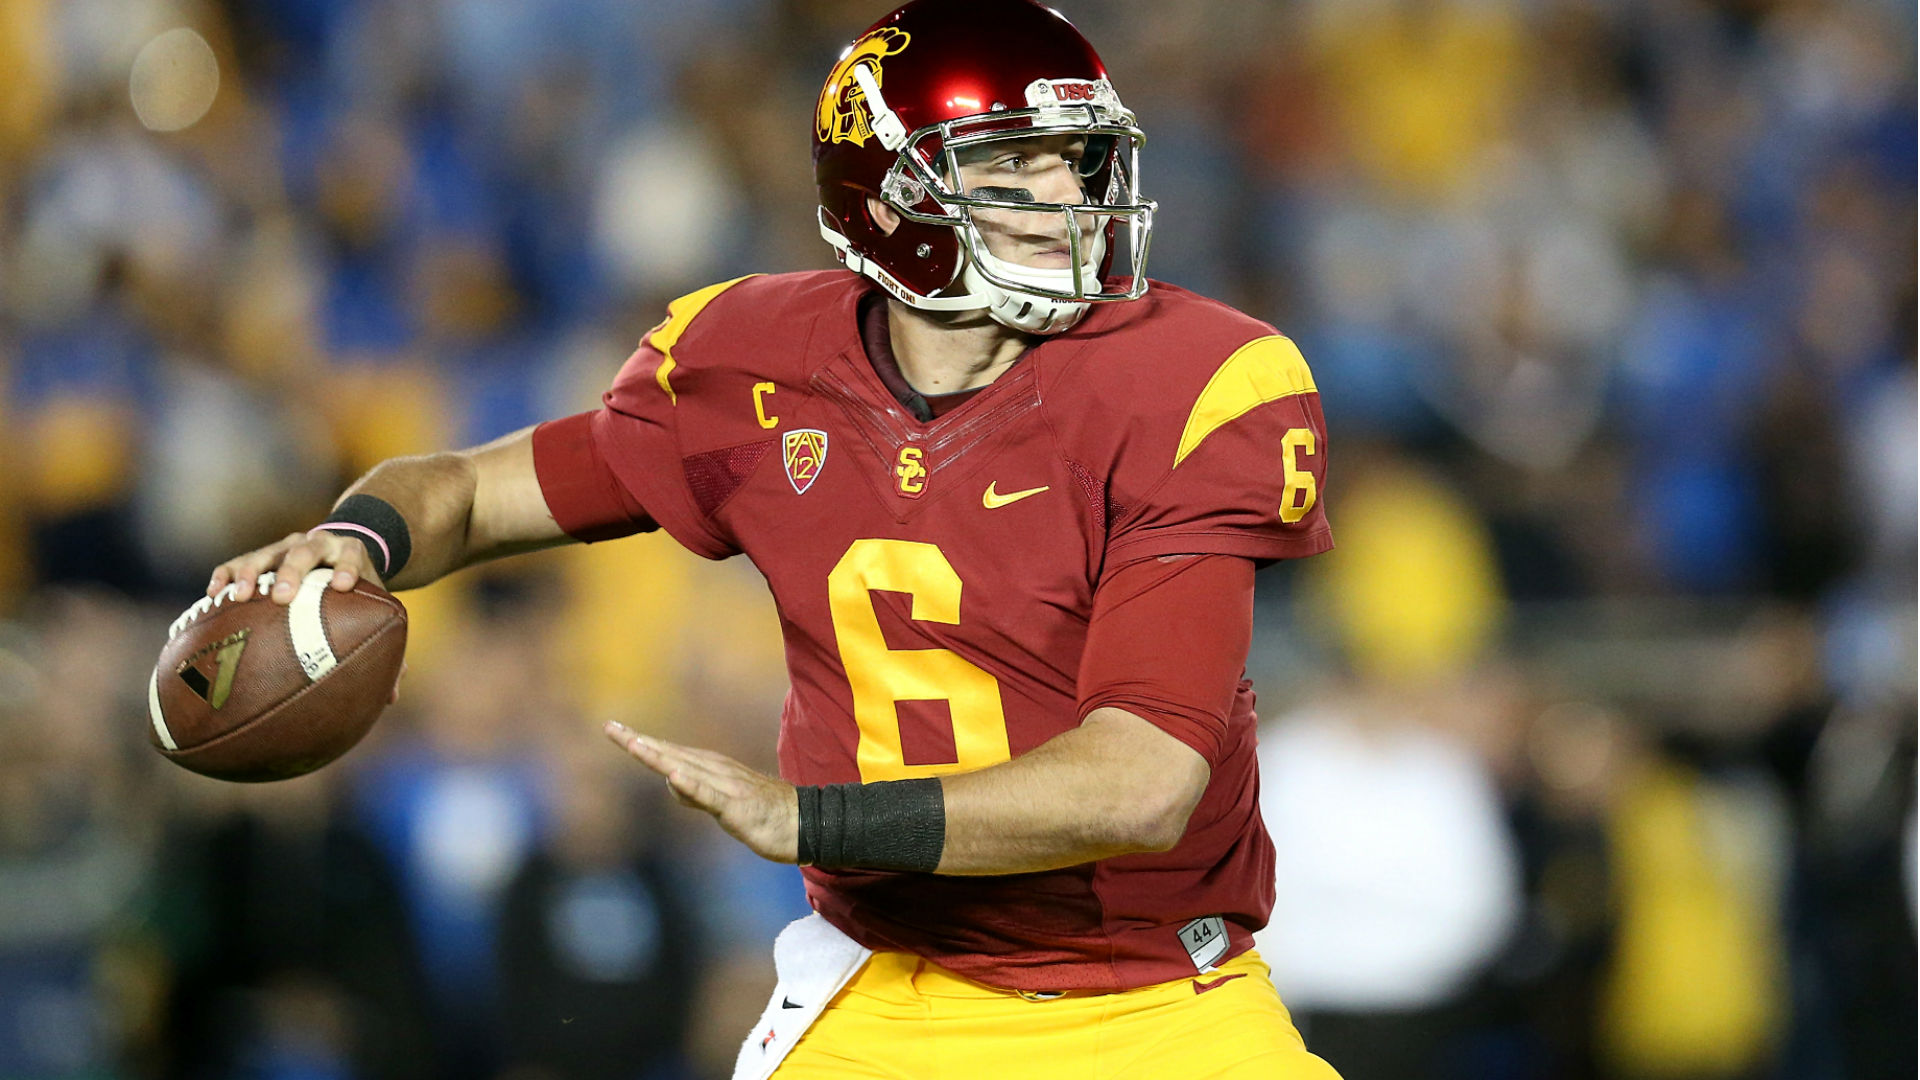 Notre Dame vs. USC betting preview and pick – USC favored over struggling Notre Dame